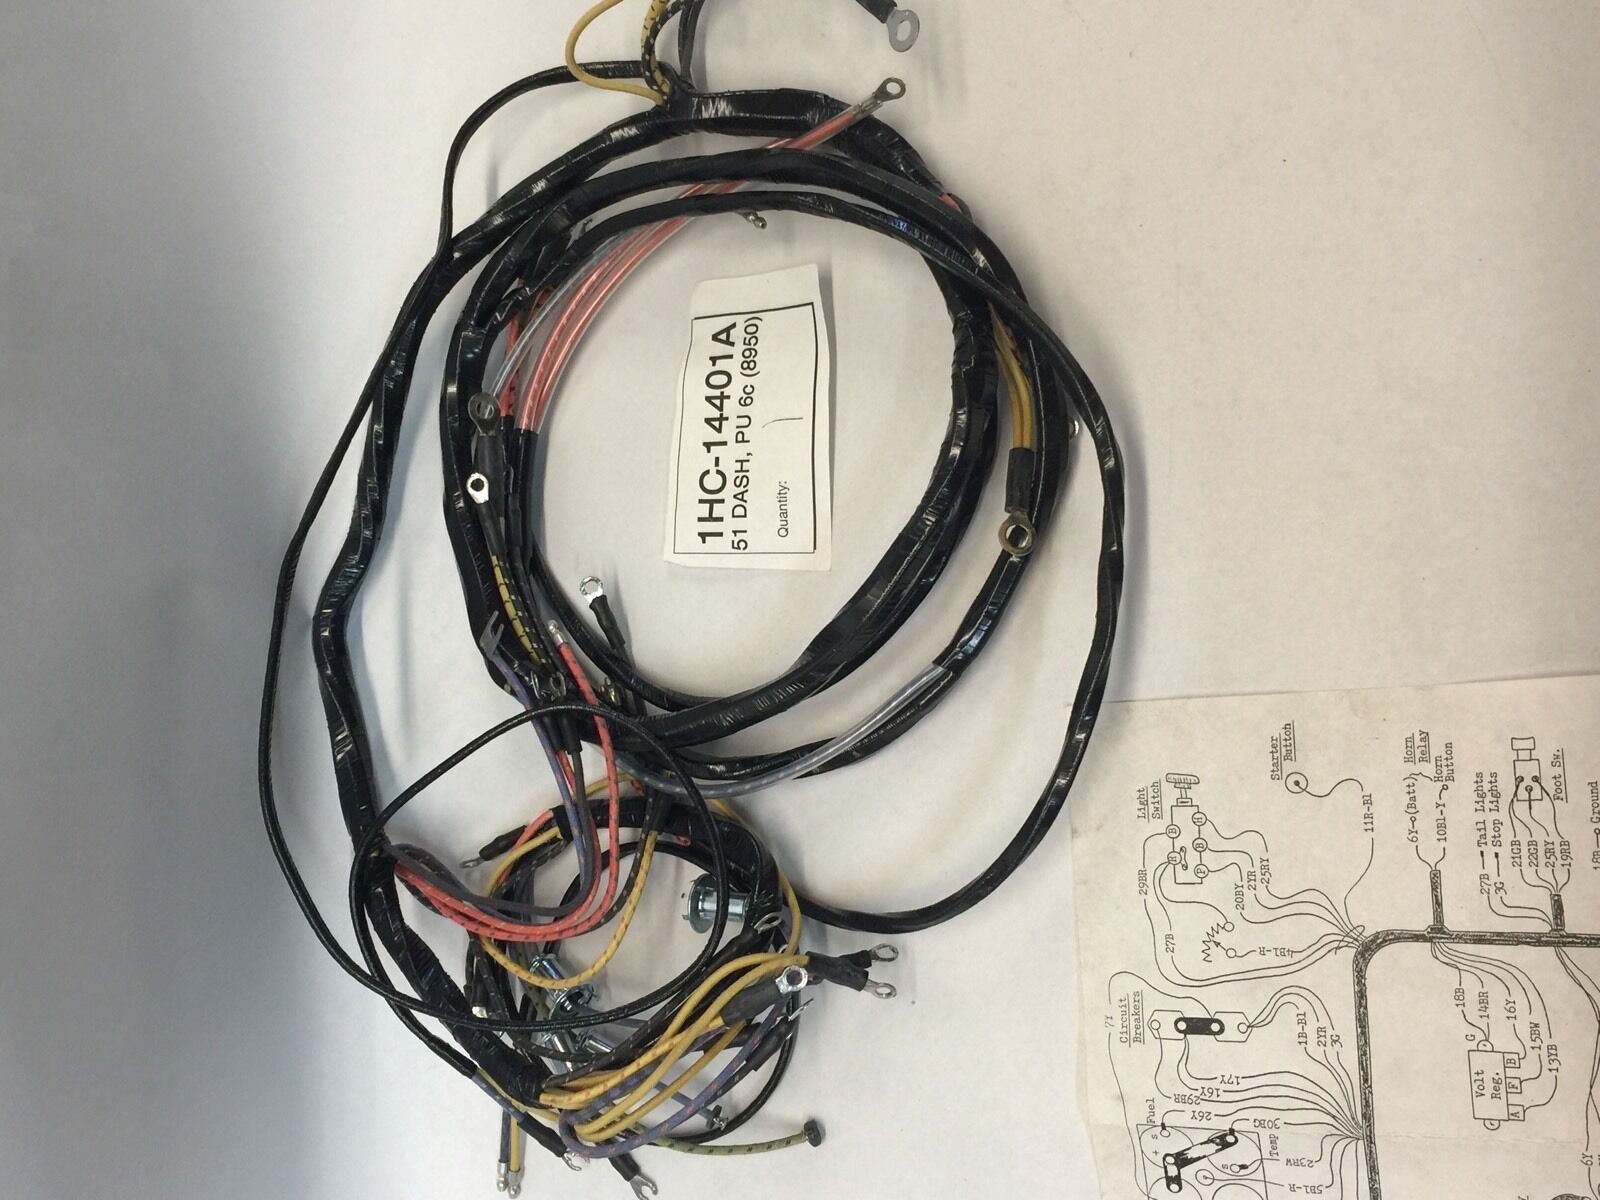 Ford F100 6 Cylinder Wiring Harness Electrical Diagrams 1964 Falcon 1951 Pick Up Truck Dash As Original